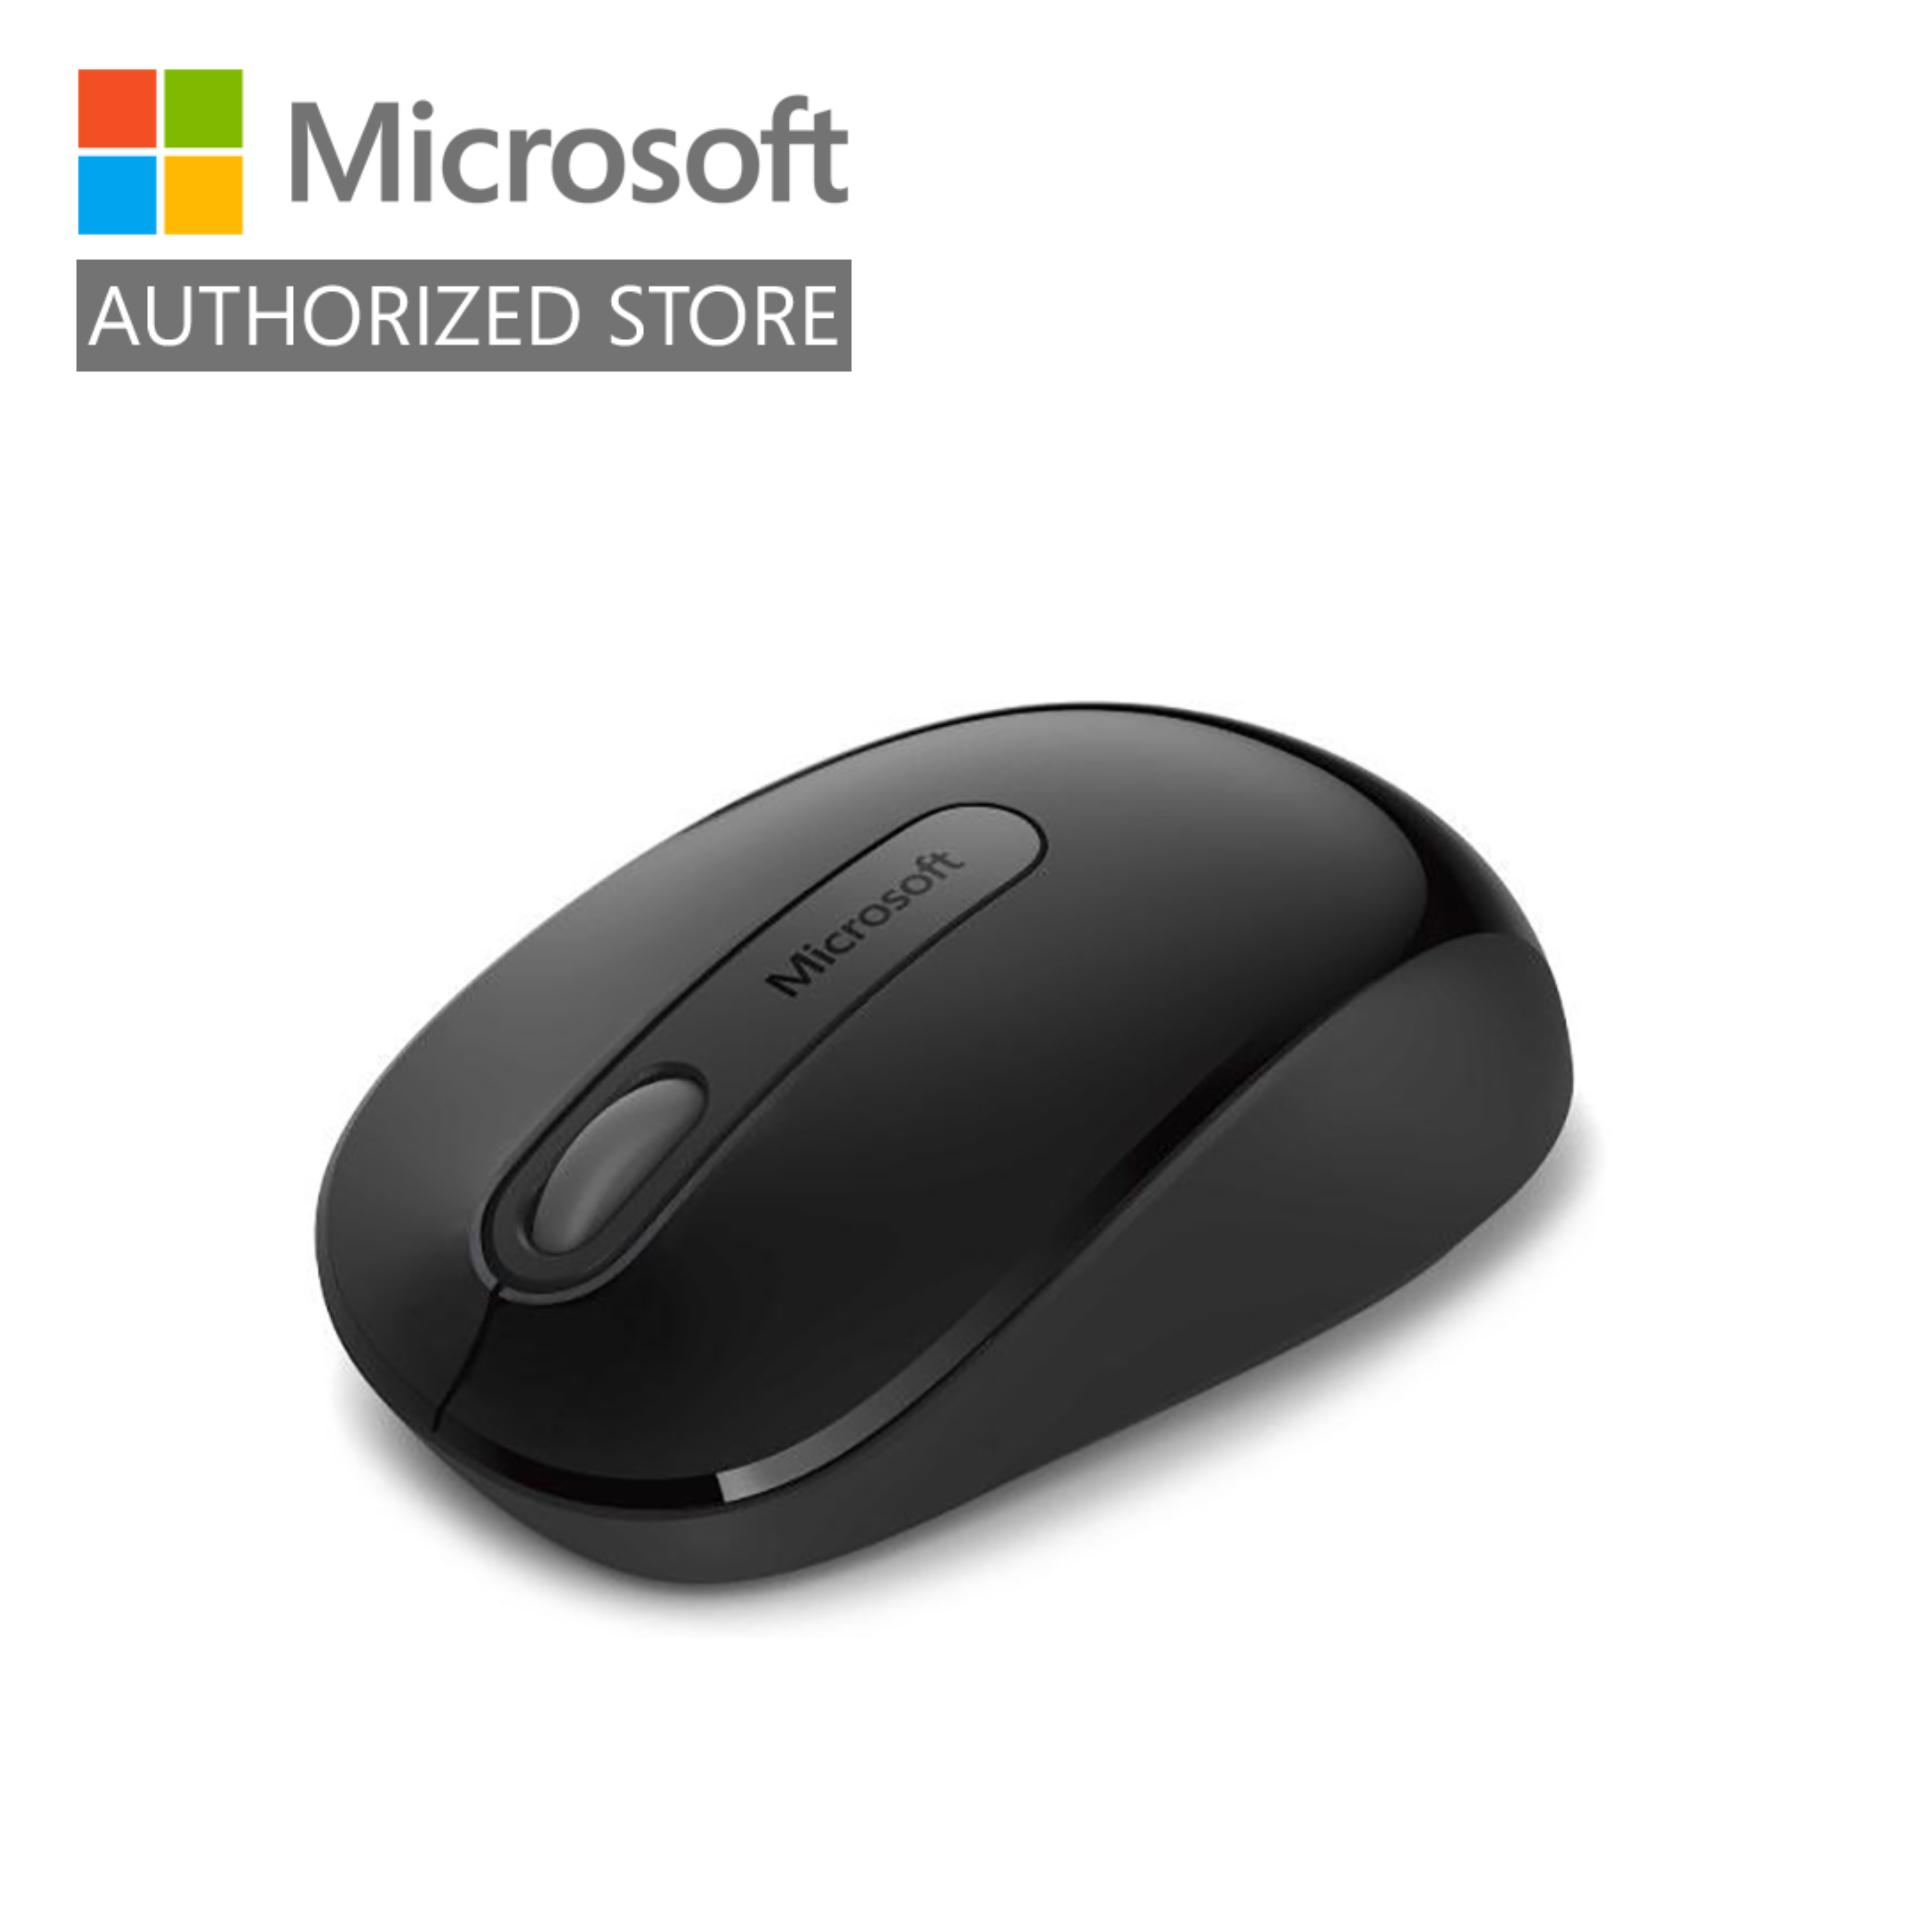 d39998651df [Wireless Mouse] Microsoft Wireless Mouse 900